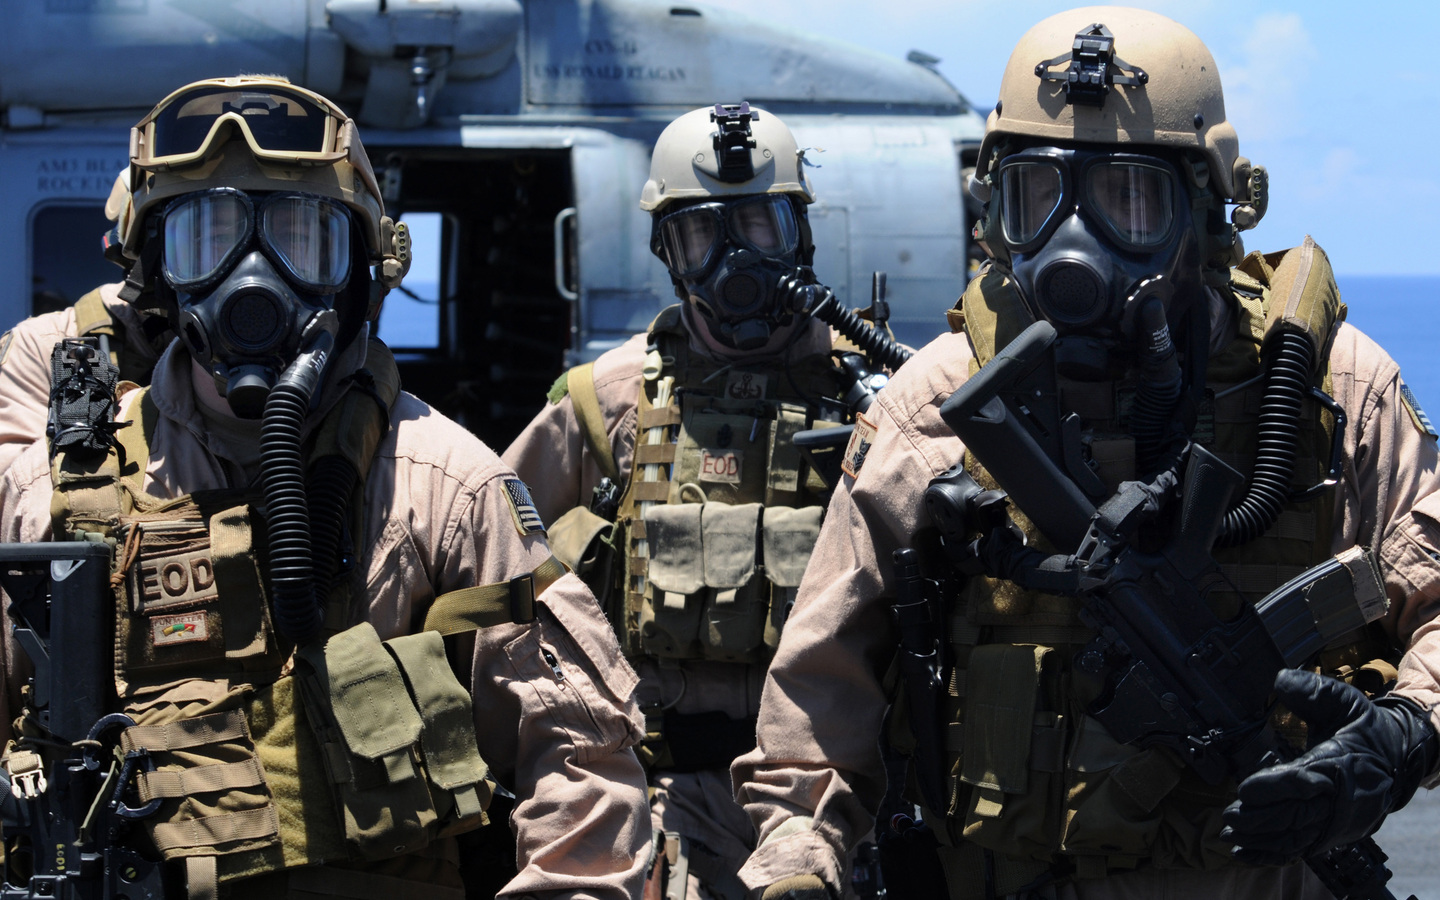 1280x960 soldiers gas - photo #23